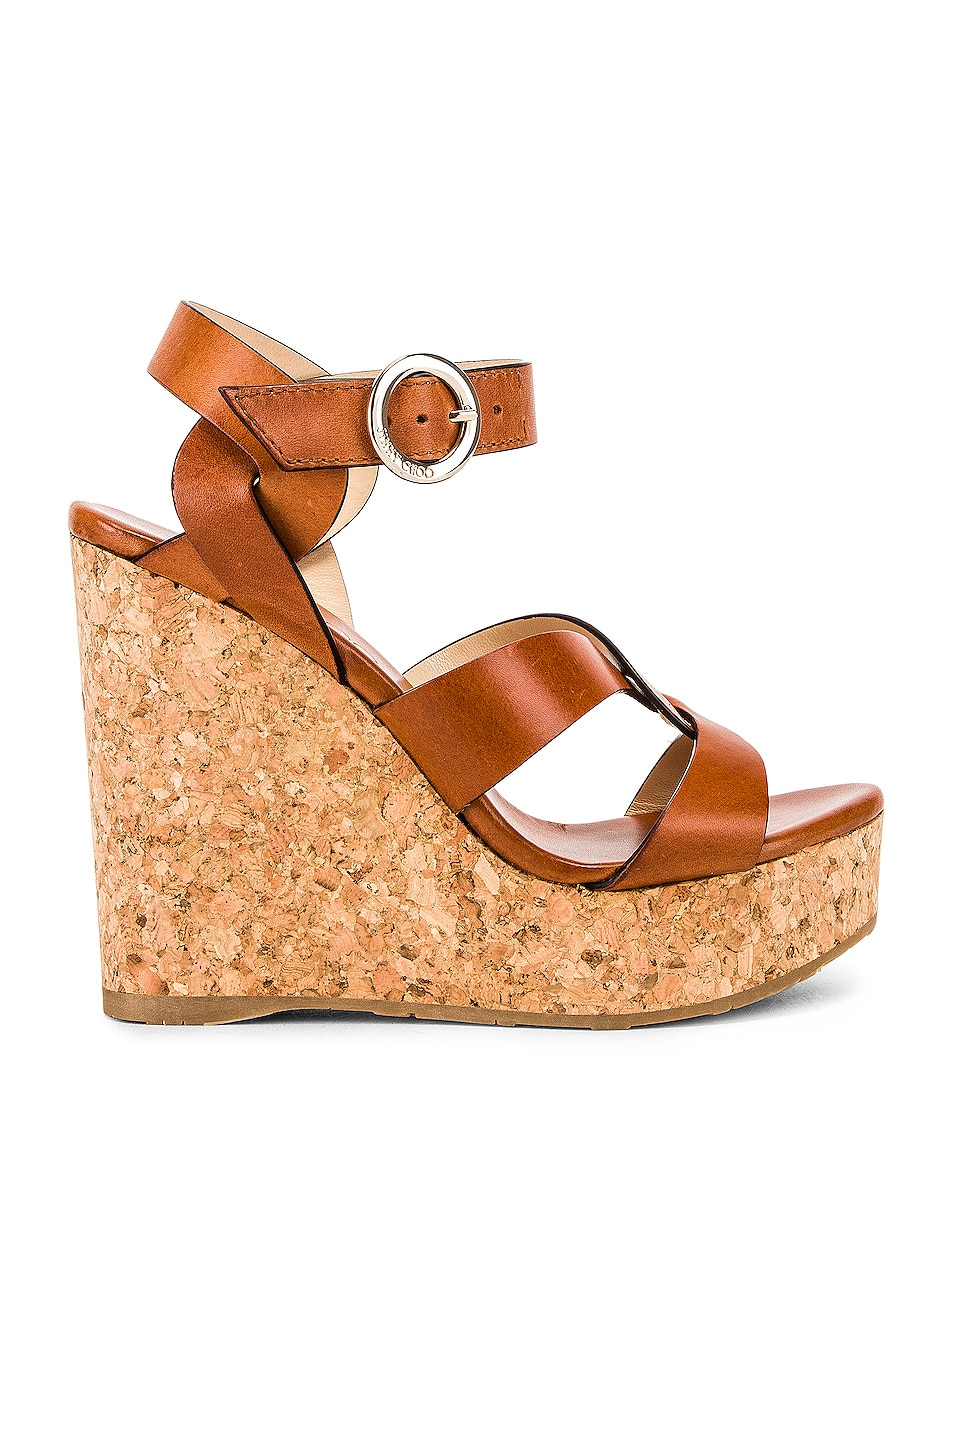 Image 1 of Jimmy Choo Aleili Wedge Heel in Cuoio